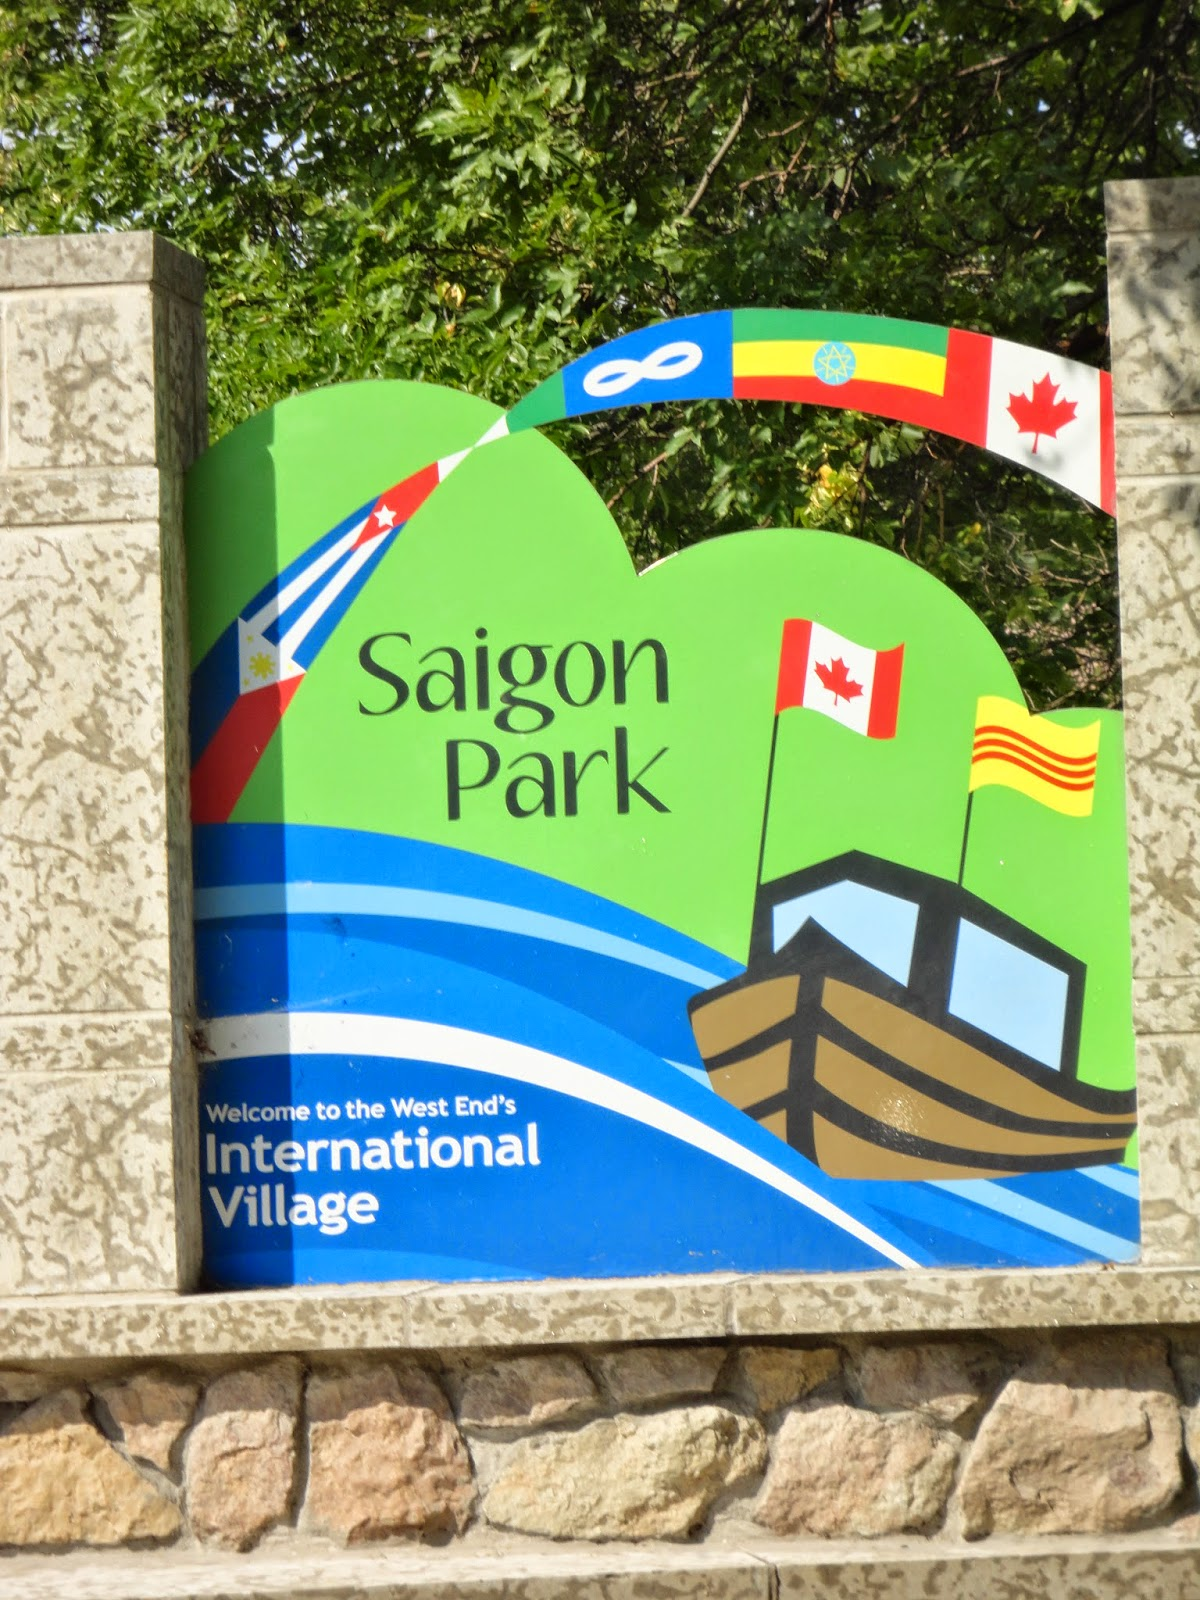 Saigon Park at 485 Ellice Avenue